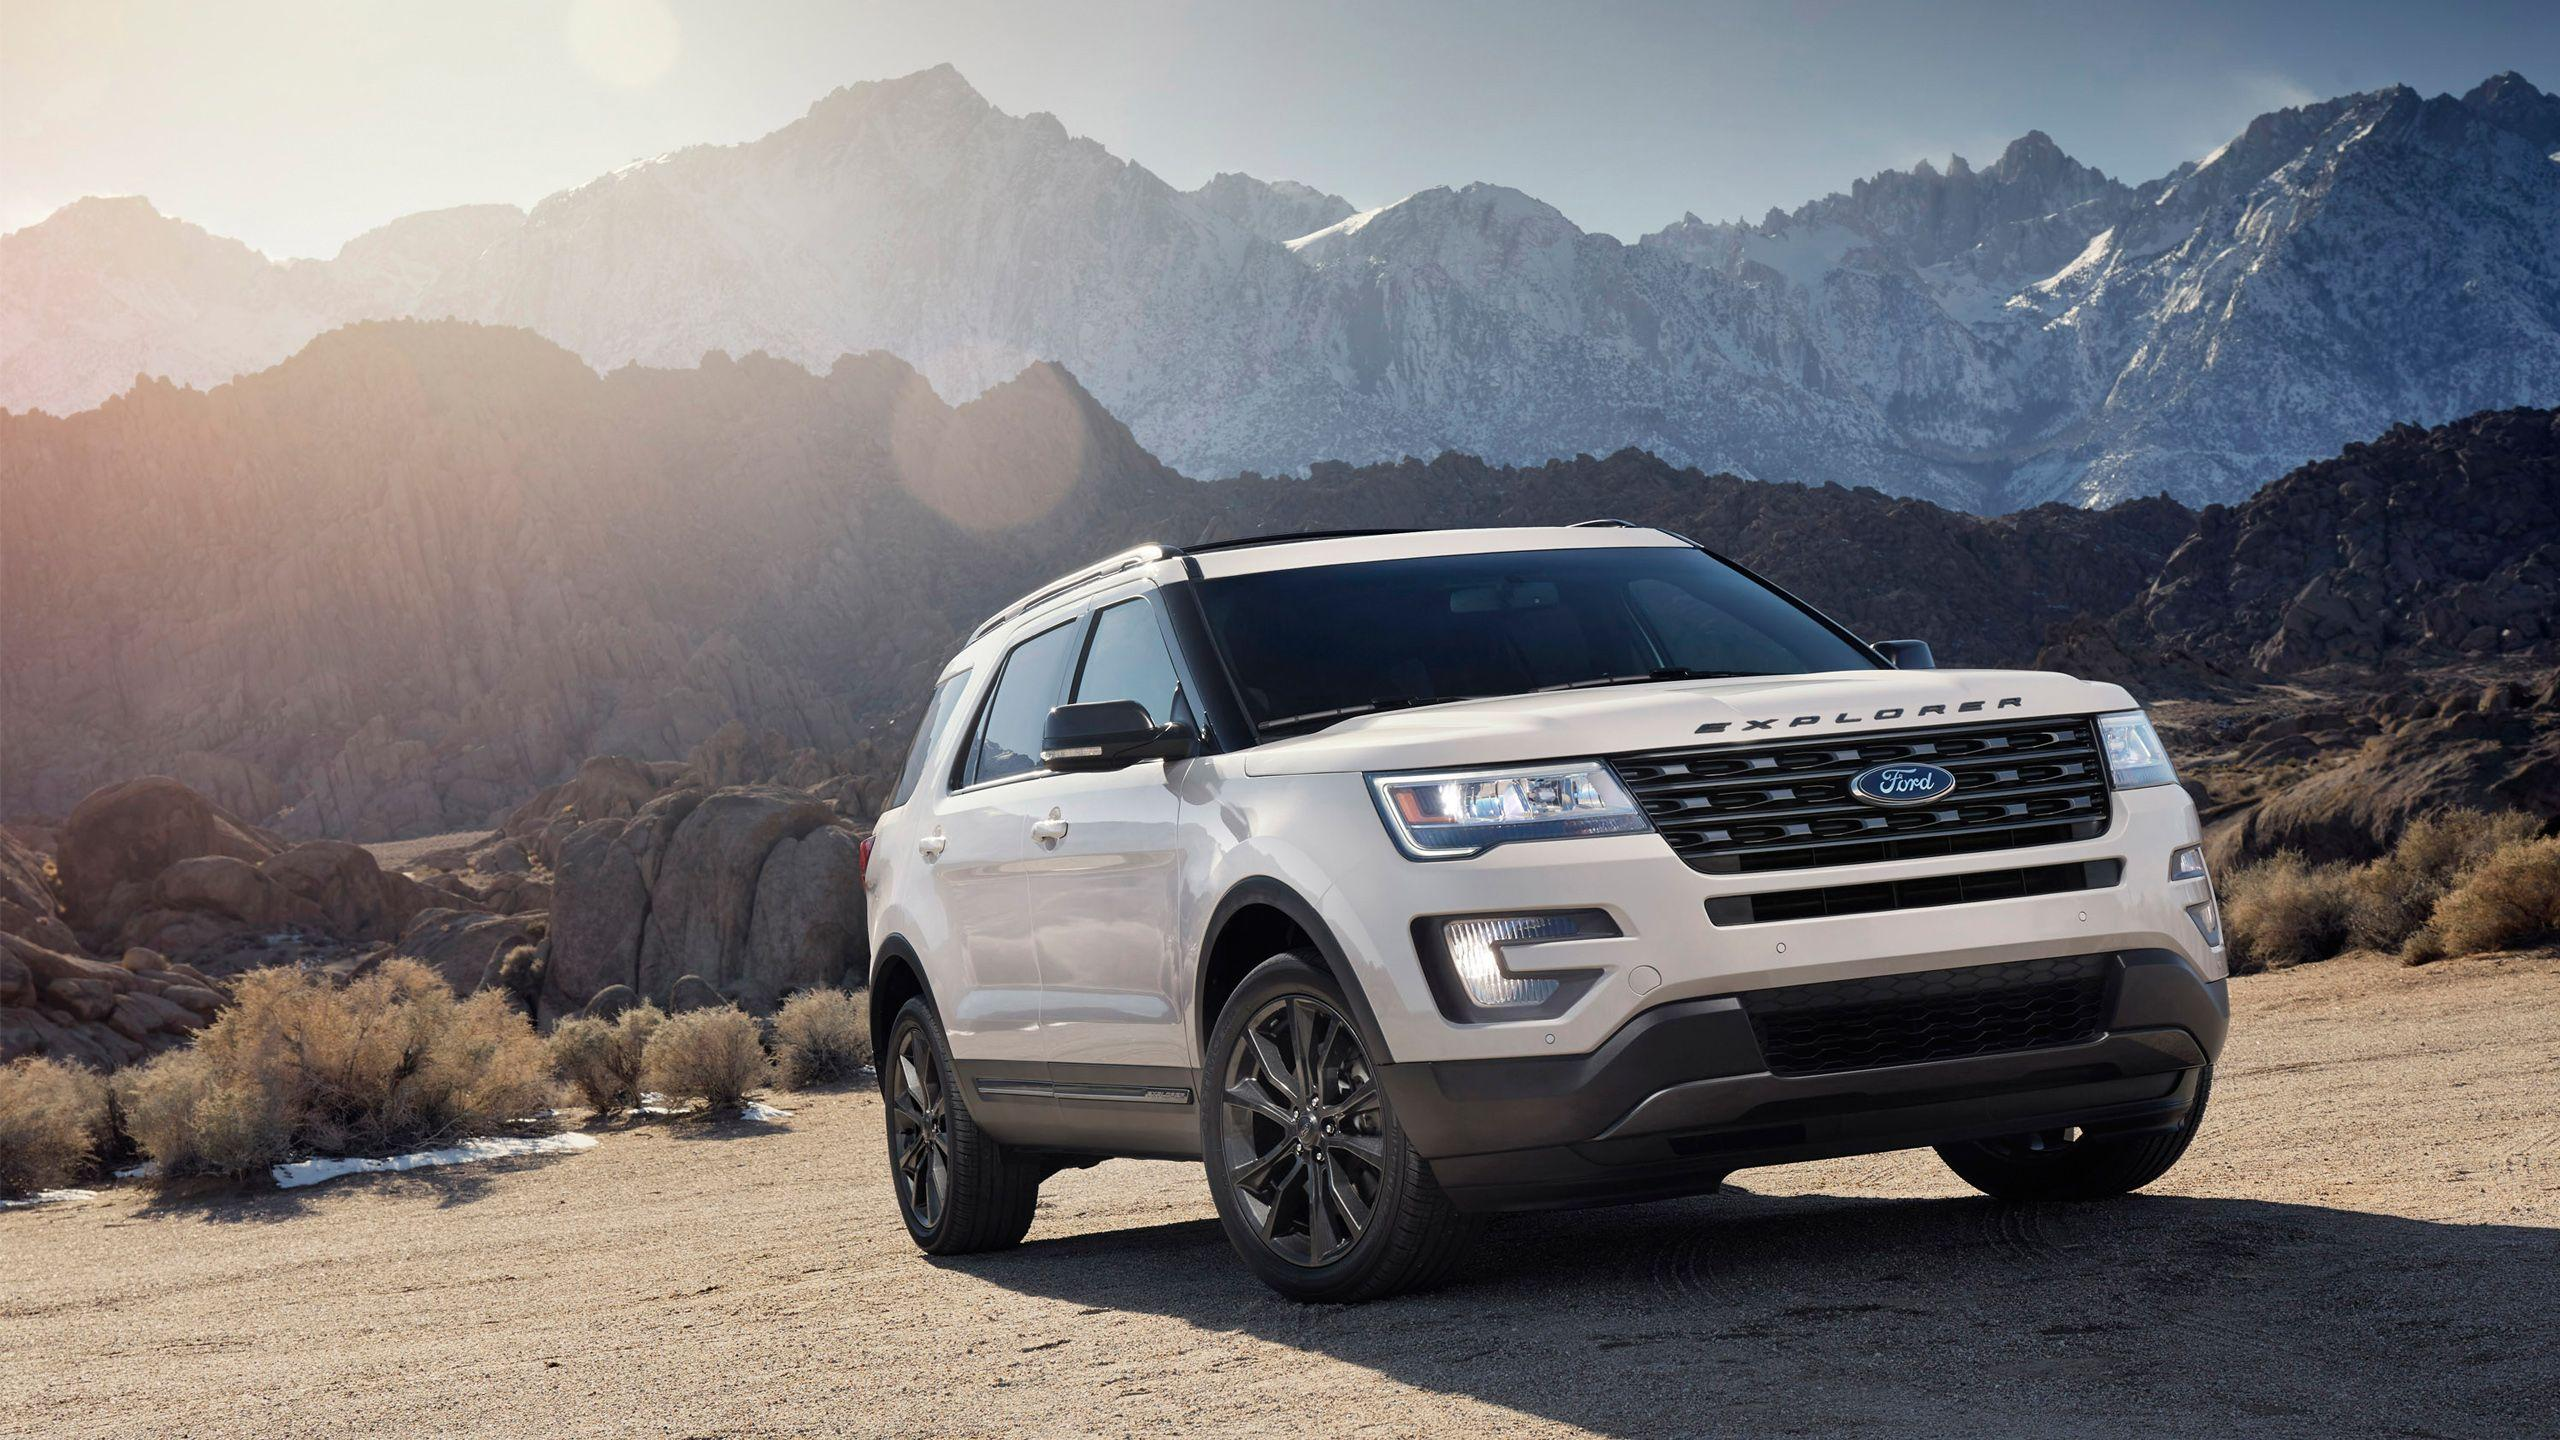 2017 Ford Explorer XLT Appearance Package Wallpapers